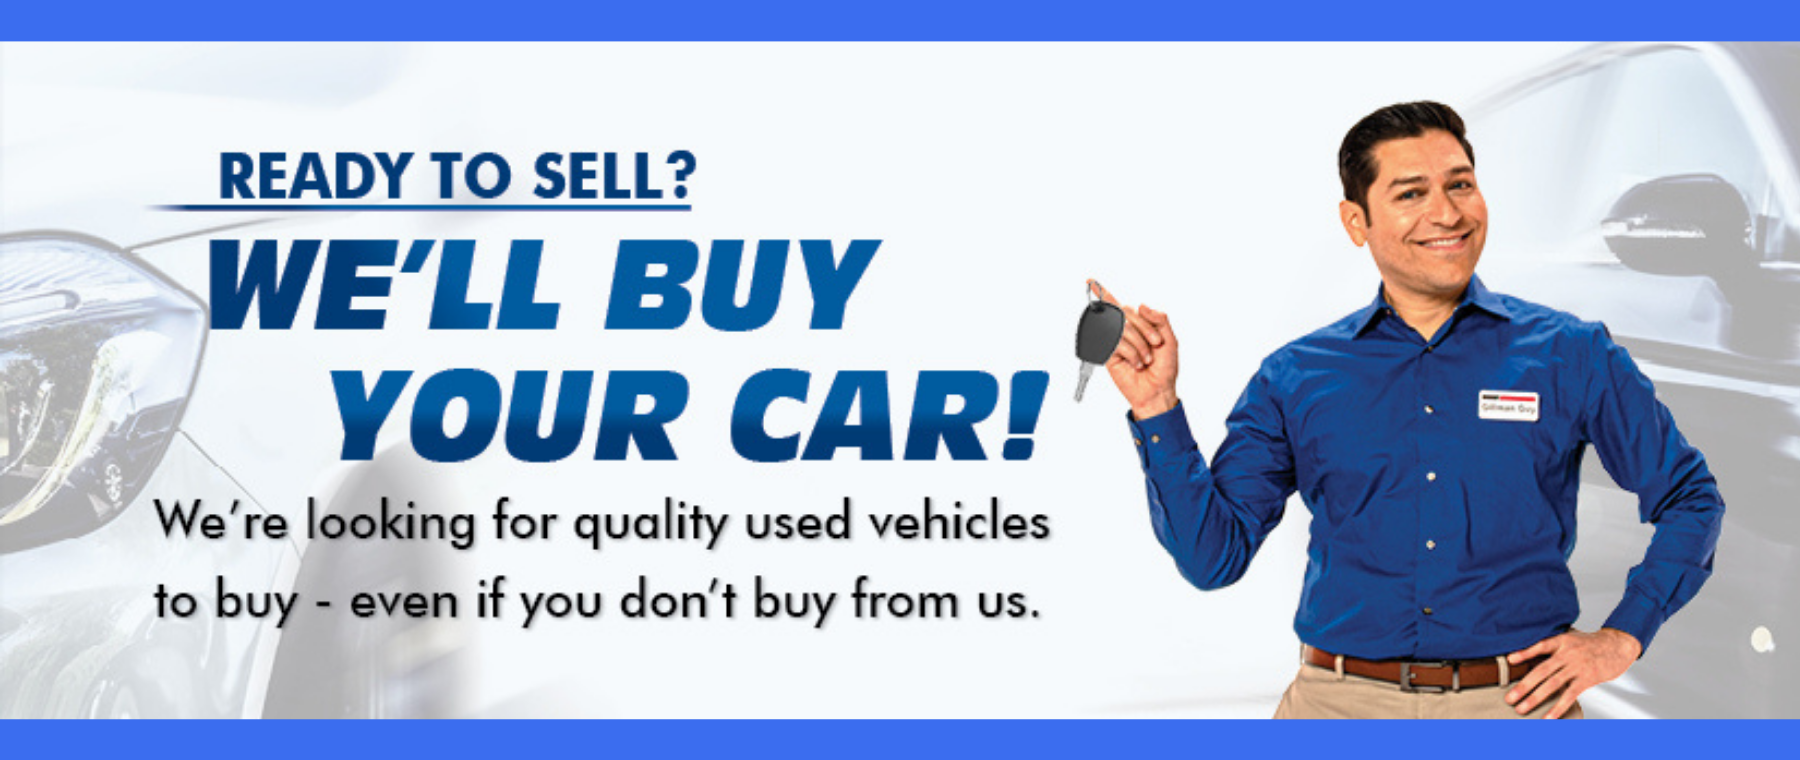 Sell us Your Car!